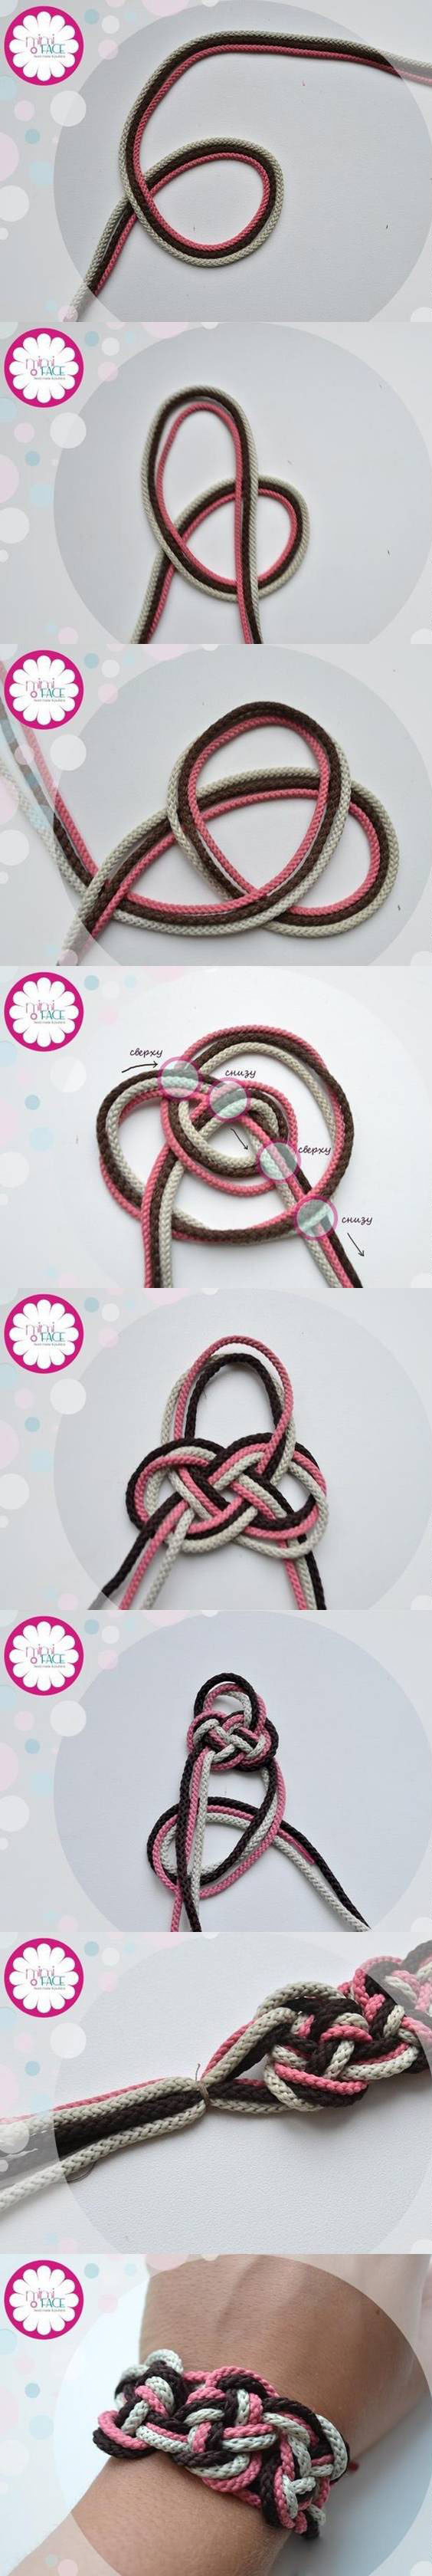 DIY-Multi-color-Bracelet11